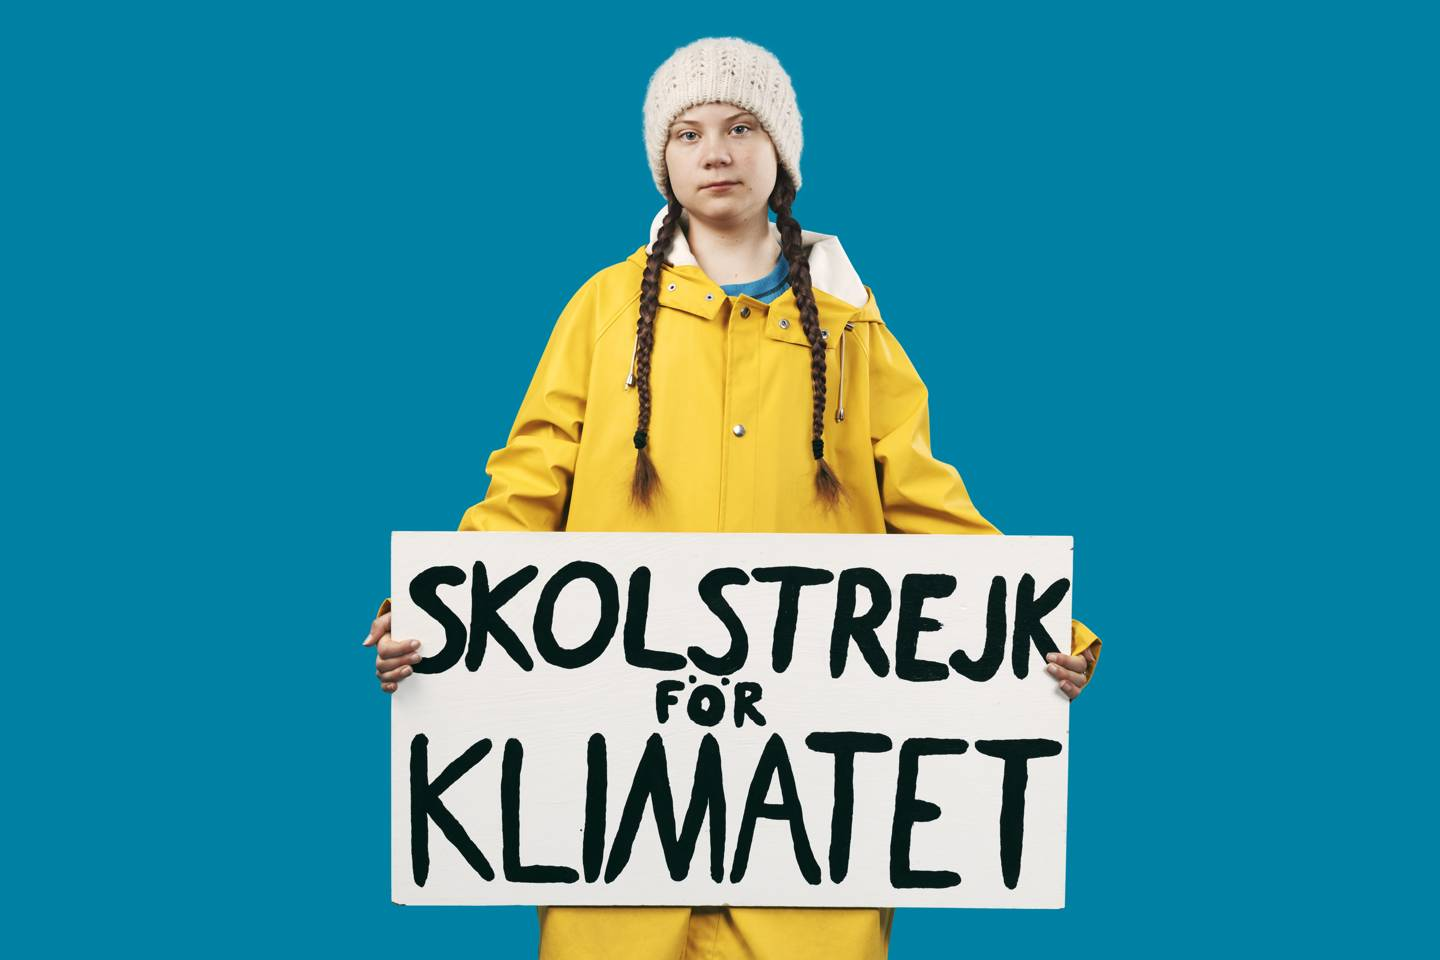 16-year-old Greta Thunberg has mobilised millions of young people to demand action on the world's climate crisis. Credit:  AORTA